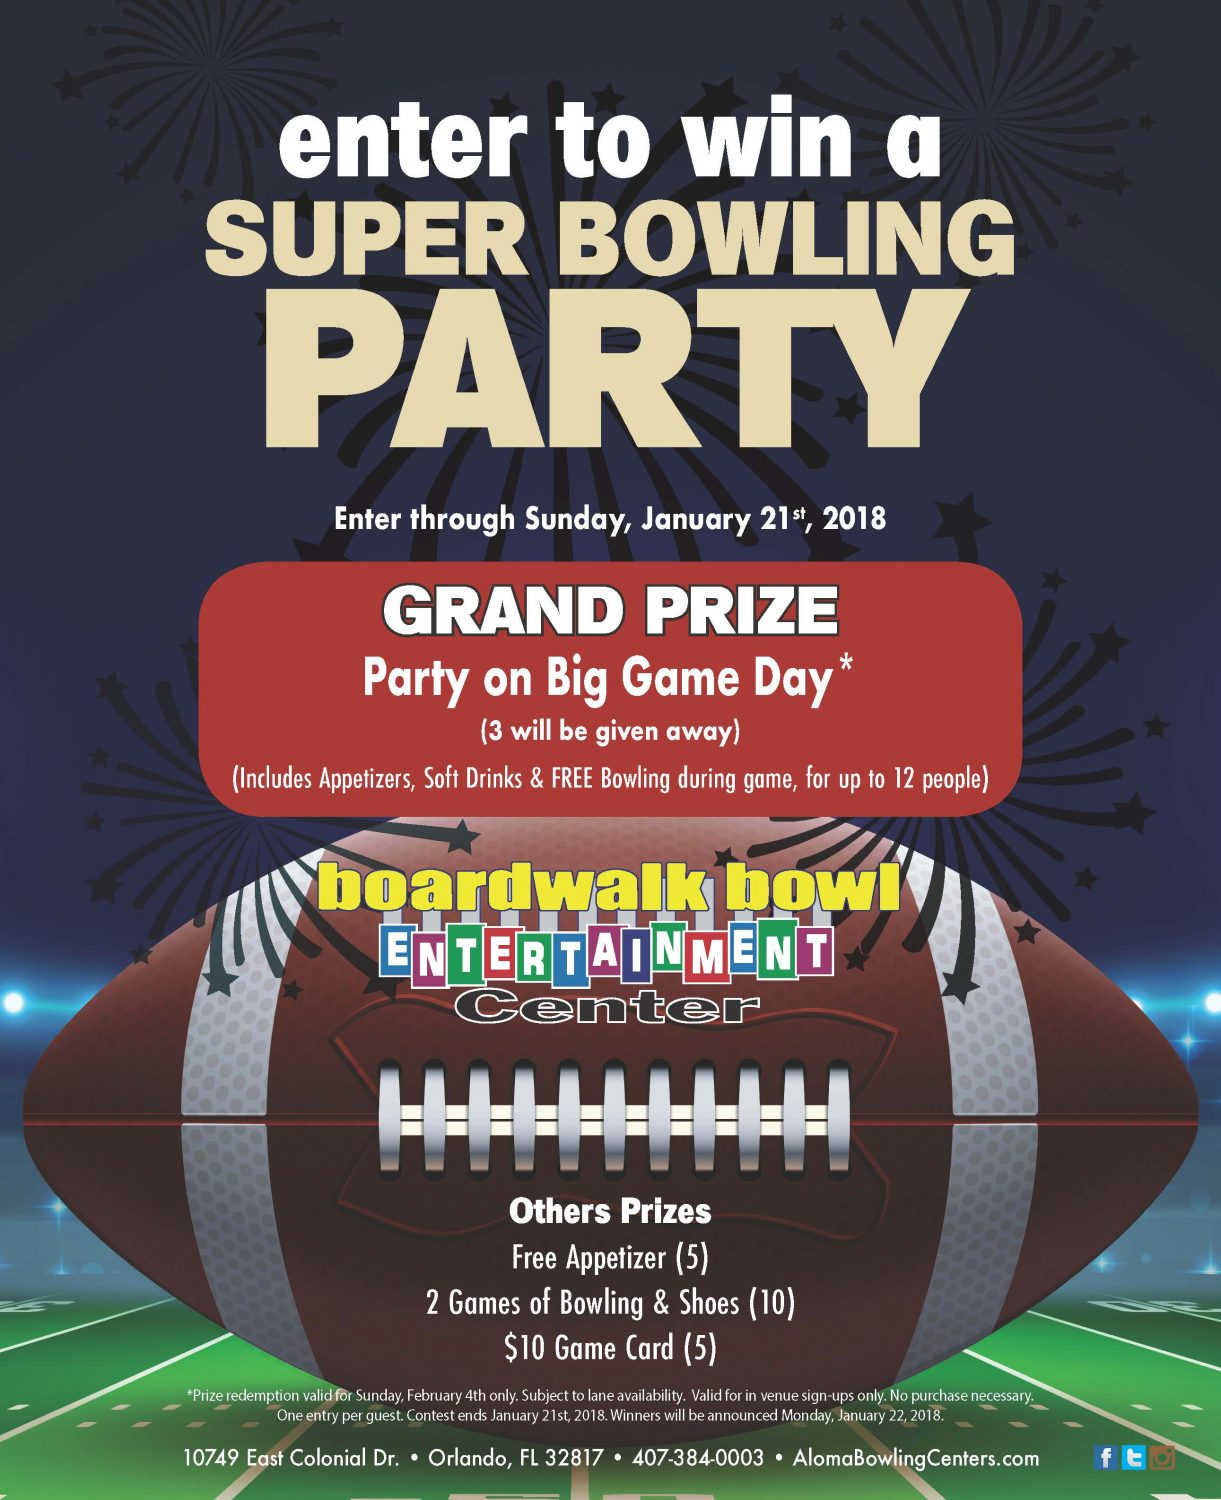 Win a Super Bowling Party